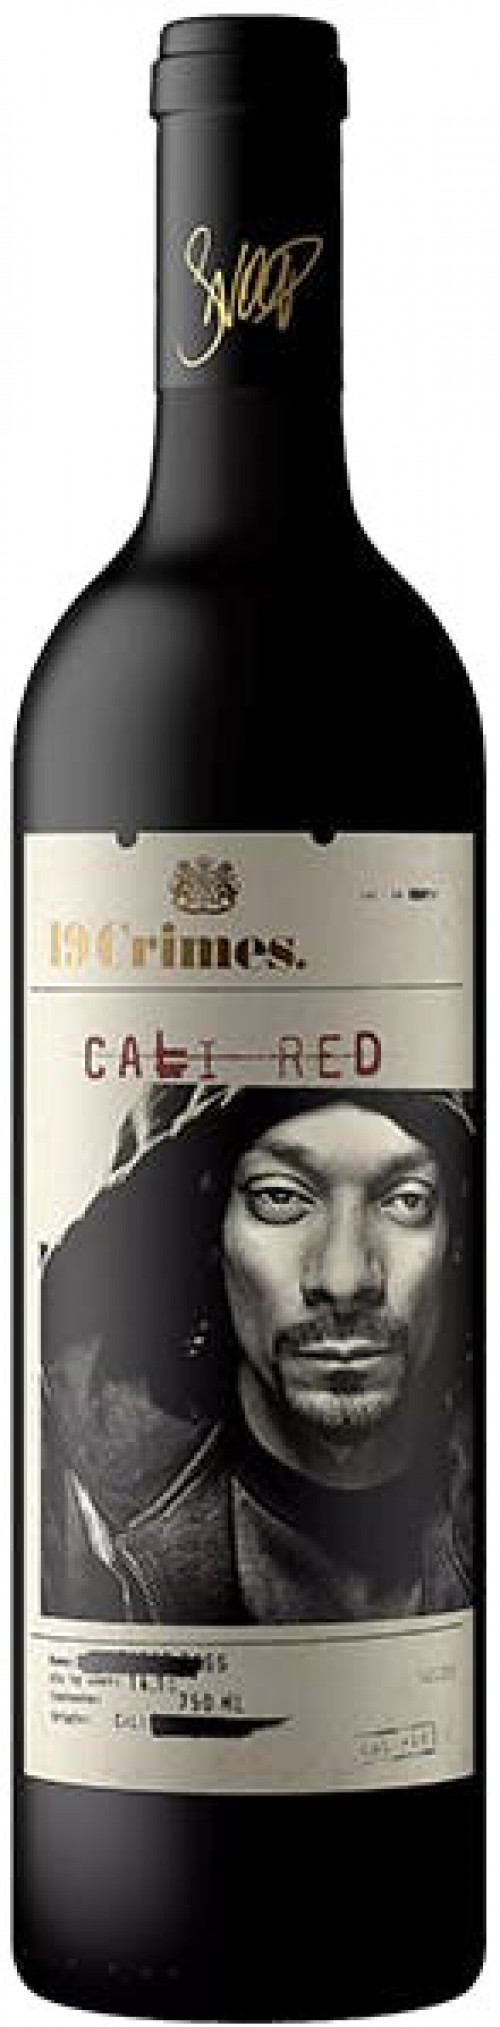 19 Crimes Cali Red 750ml